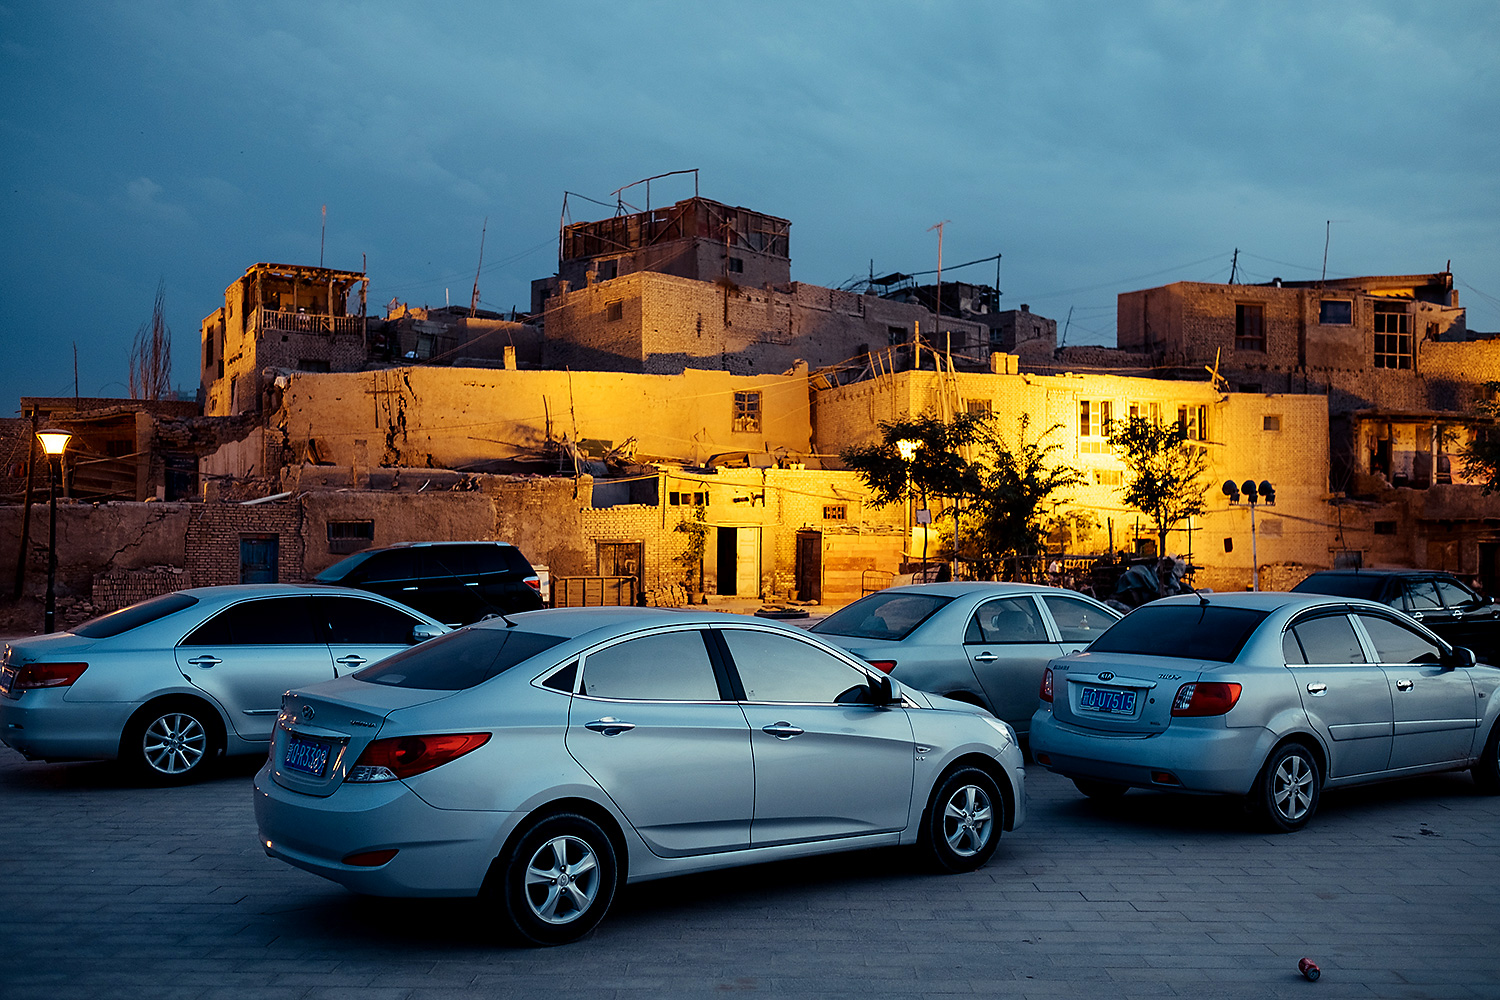 On the edge of the Taklamakan Desert, modern automobiles sit in the shadow of a bazaar in the Old City on a warm spring night. In 2009, Beijing promised improved living conditions for city residents and a new, updated Old City for tourists.